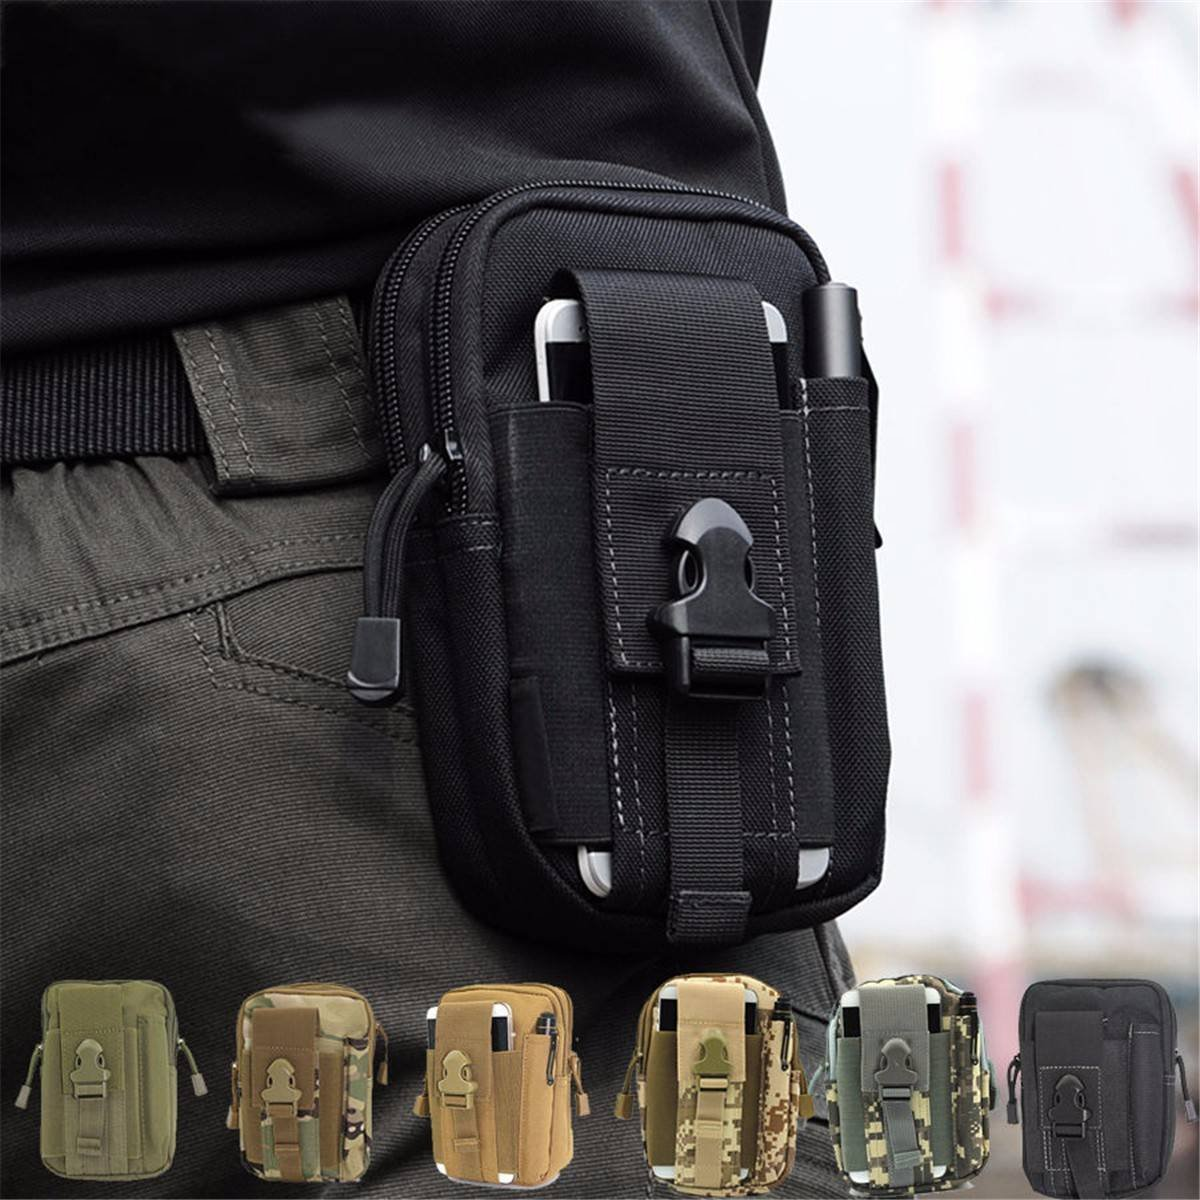 CAMTOA Multi-Purpose Tactical Waist Bag Poly Tool Holder EDC Pouch Bag Military Utility Tactical Waist Pack Camping Hiking Pouch Arrny Green by CAMTOA